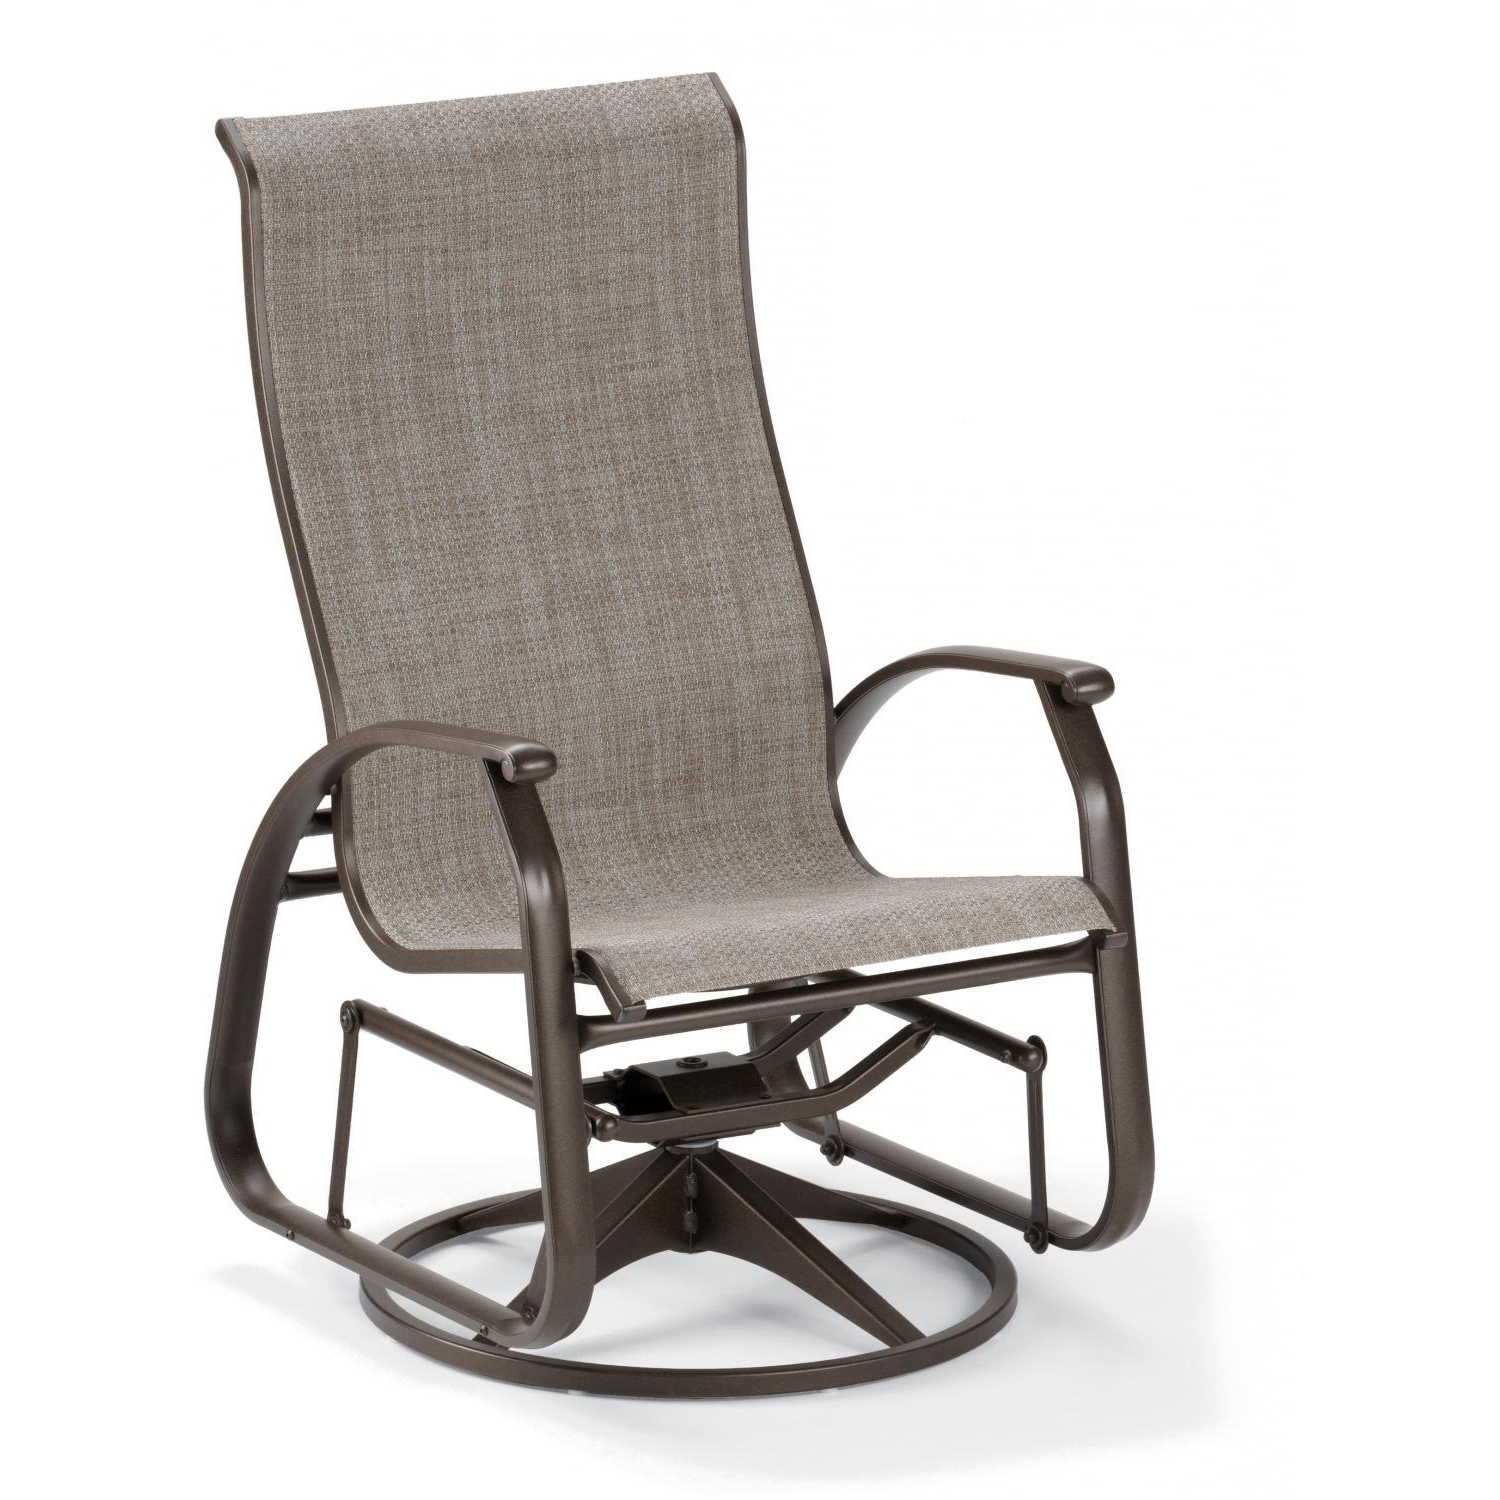 Patio Rocking Chairs And Gliders Regarding Popular Outdoor Rockers And Gliders (View 15 of 20)